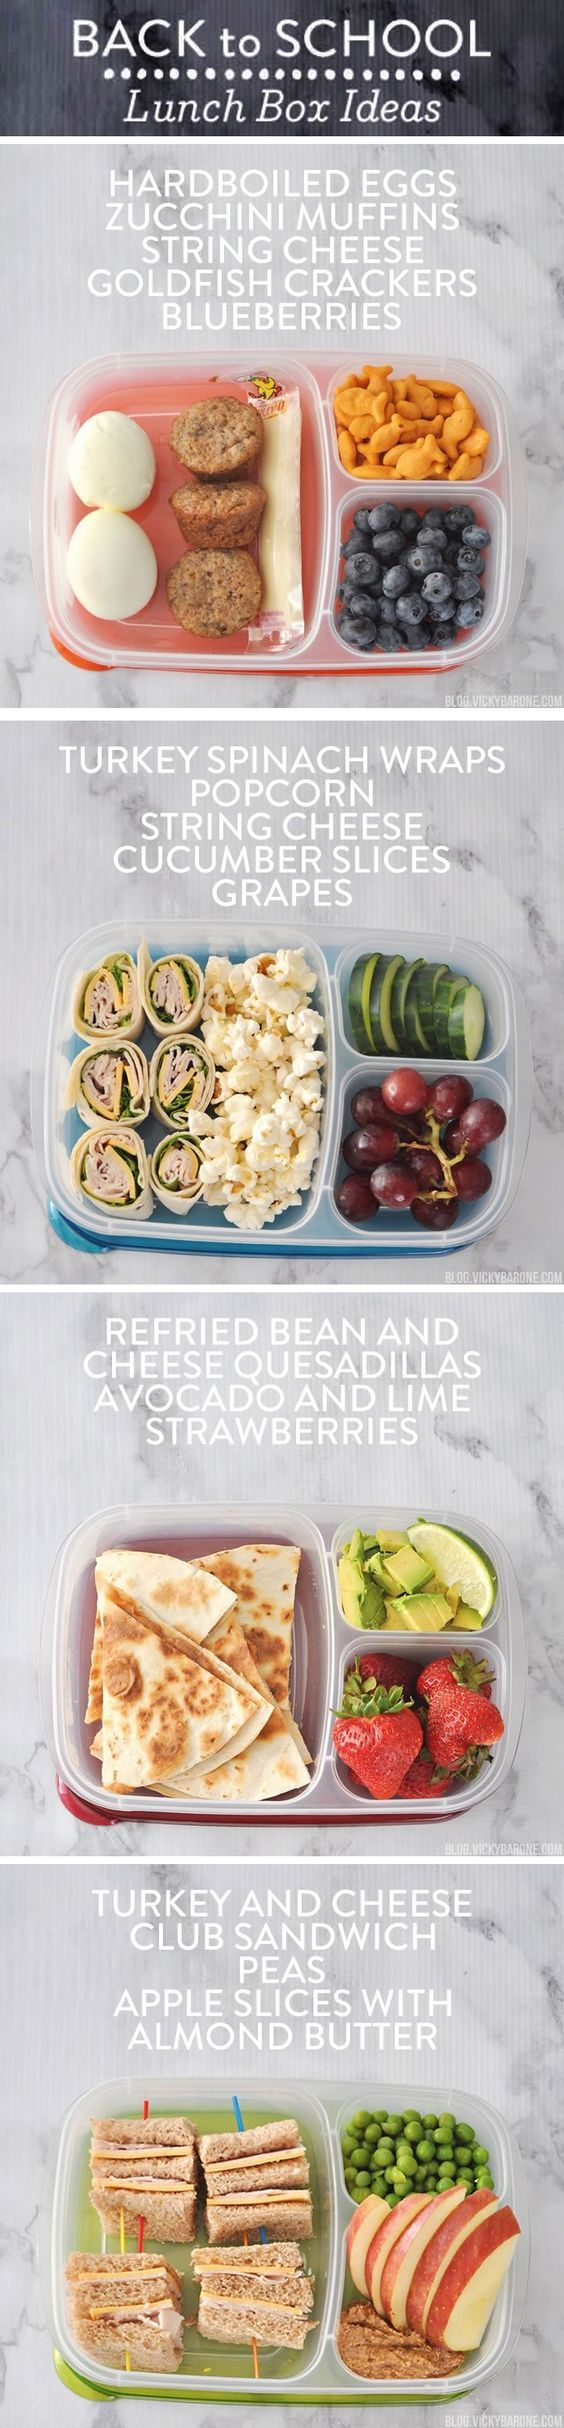 Yummy packed lunch ideas for when you're stumped on what to send your kiddo to school with. Packed in @easylunchboxes, these lunch combinations have fruits, veggies, and protein to give your little ones the nutrition and energy to tackle the day without sacrificing taste.: